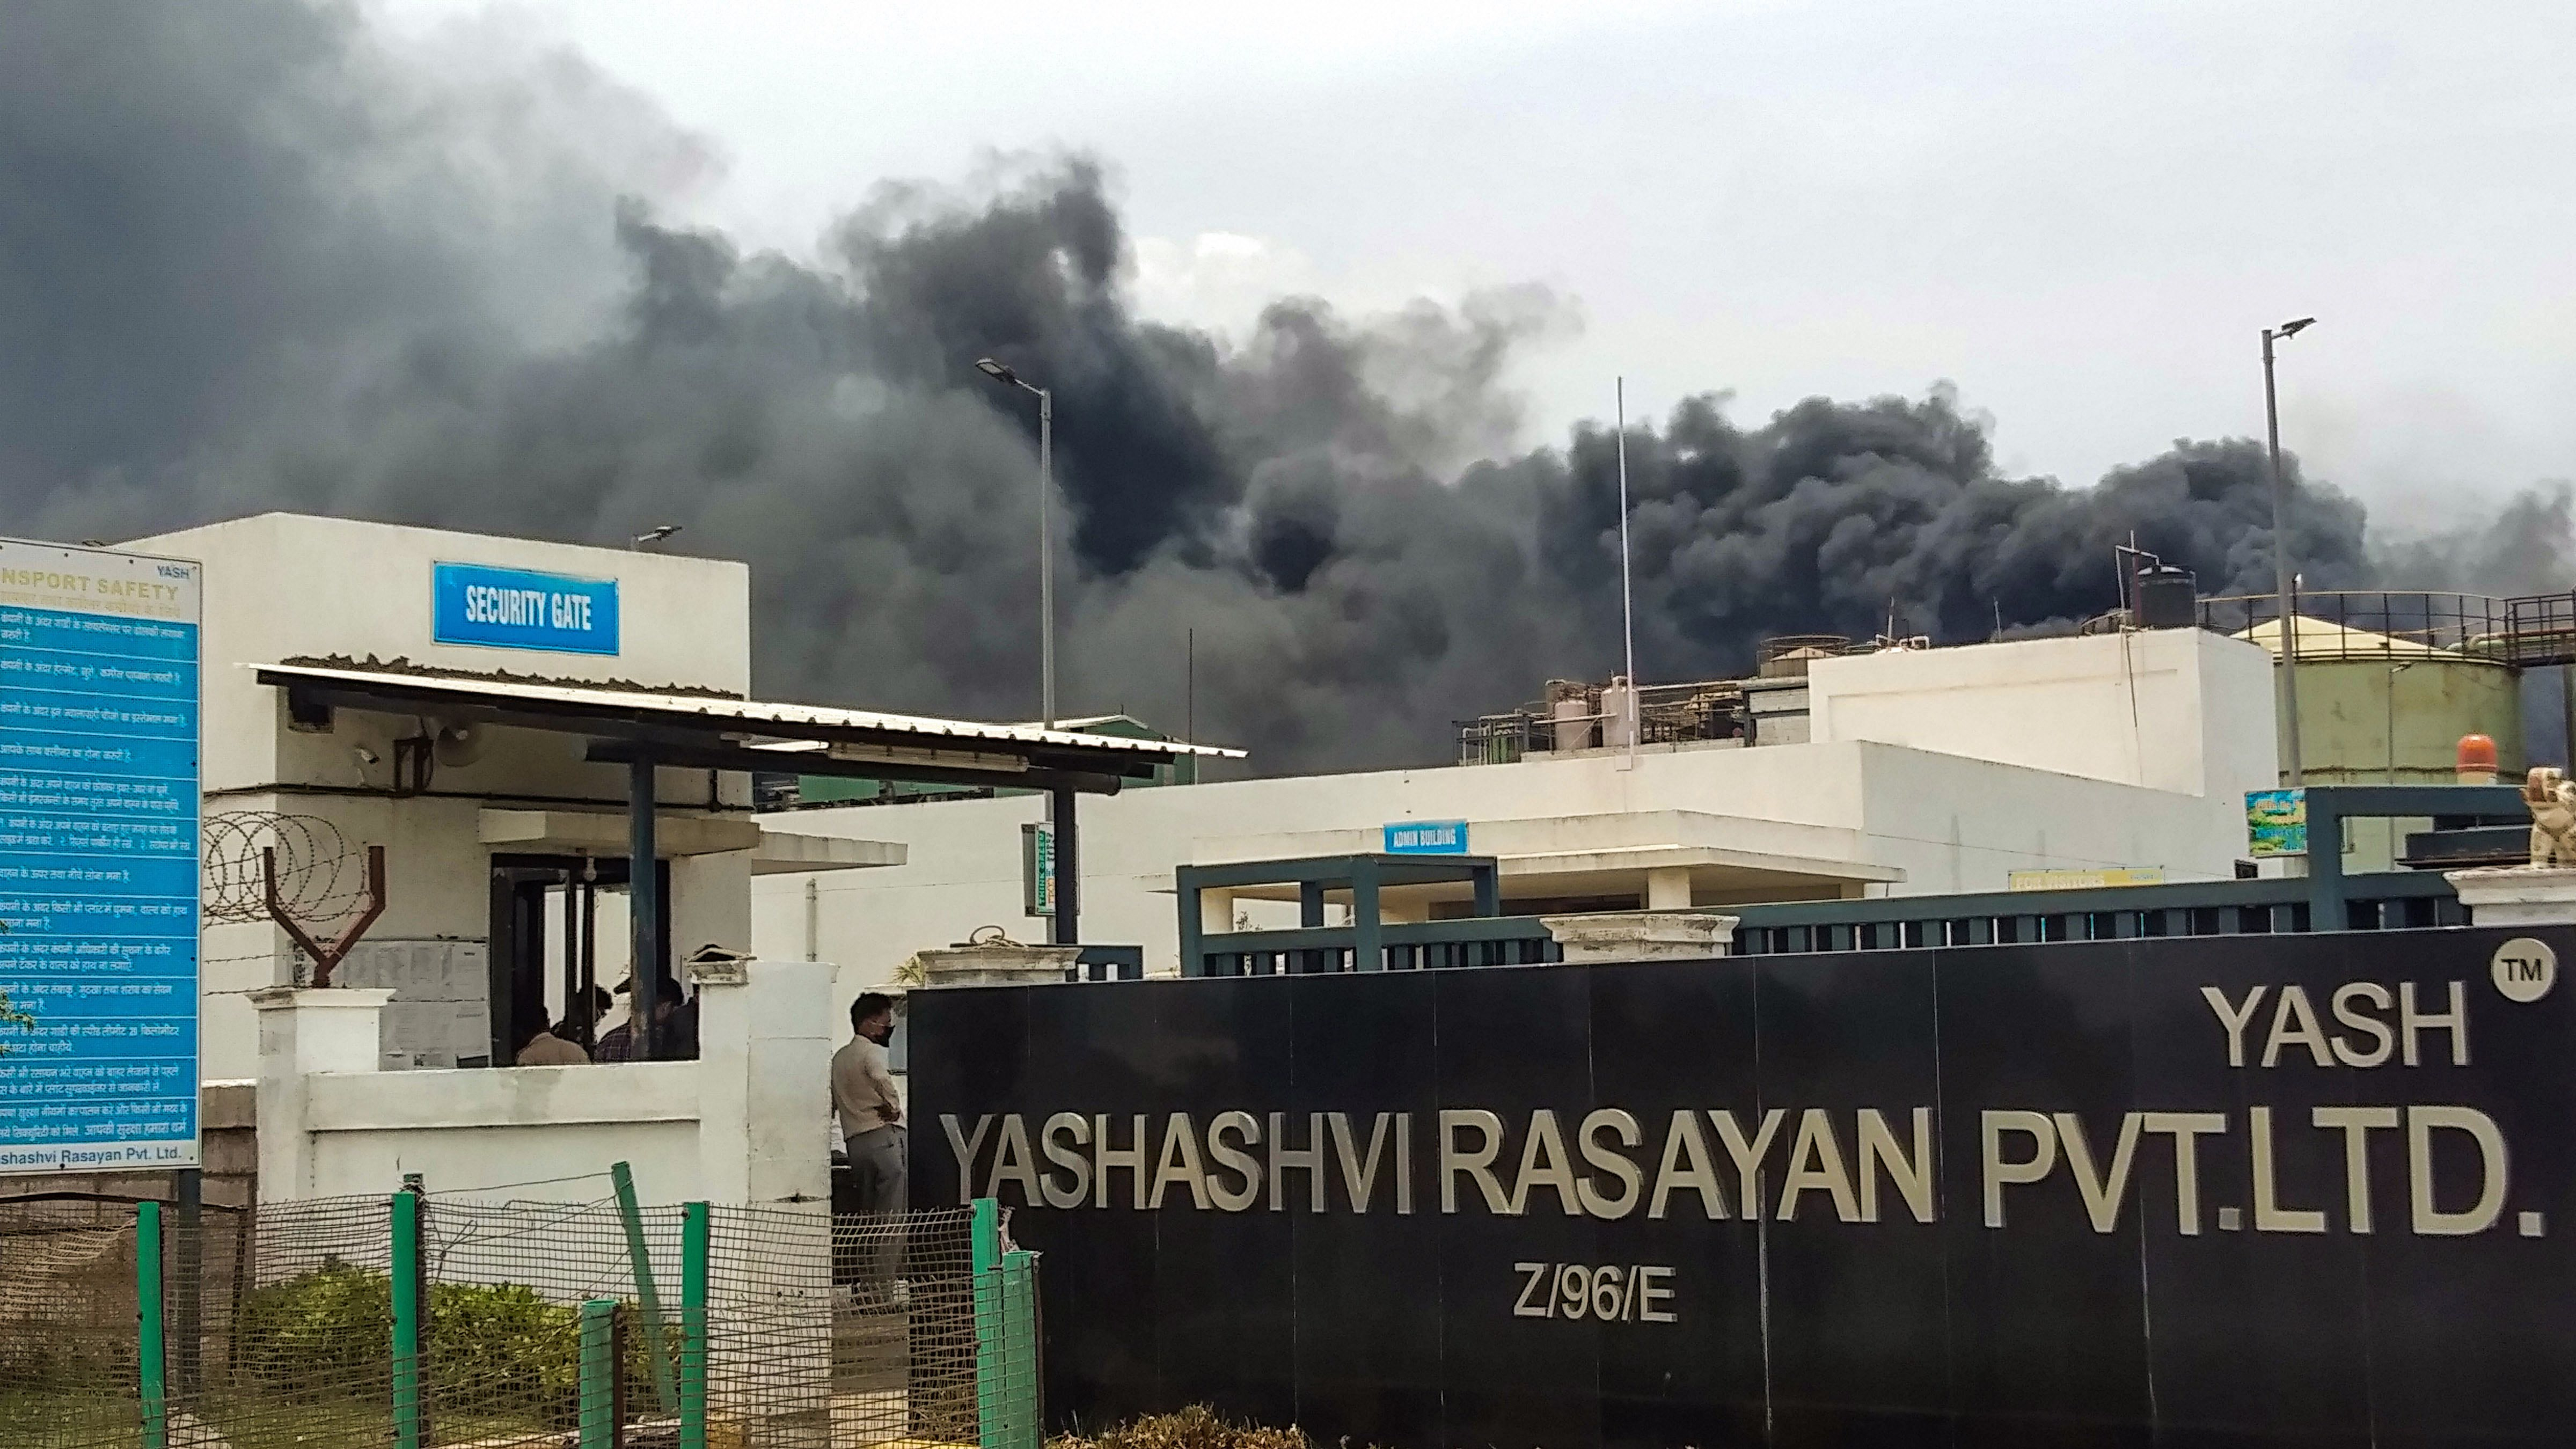 Plumes of smoke rise from the building of a chemical factory after a major fire broke out triggered due to a blast, at Dahej Industrial Estate in Bharuch district of Gujarat, Wednesday, June 3, 2020.